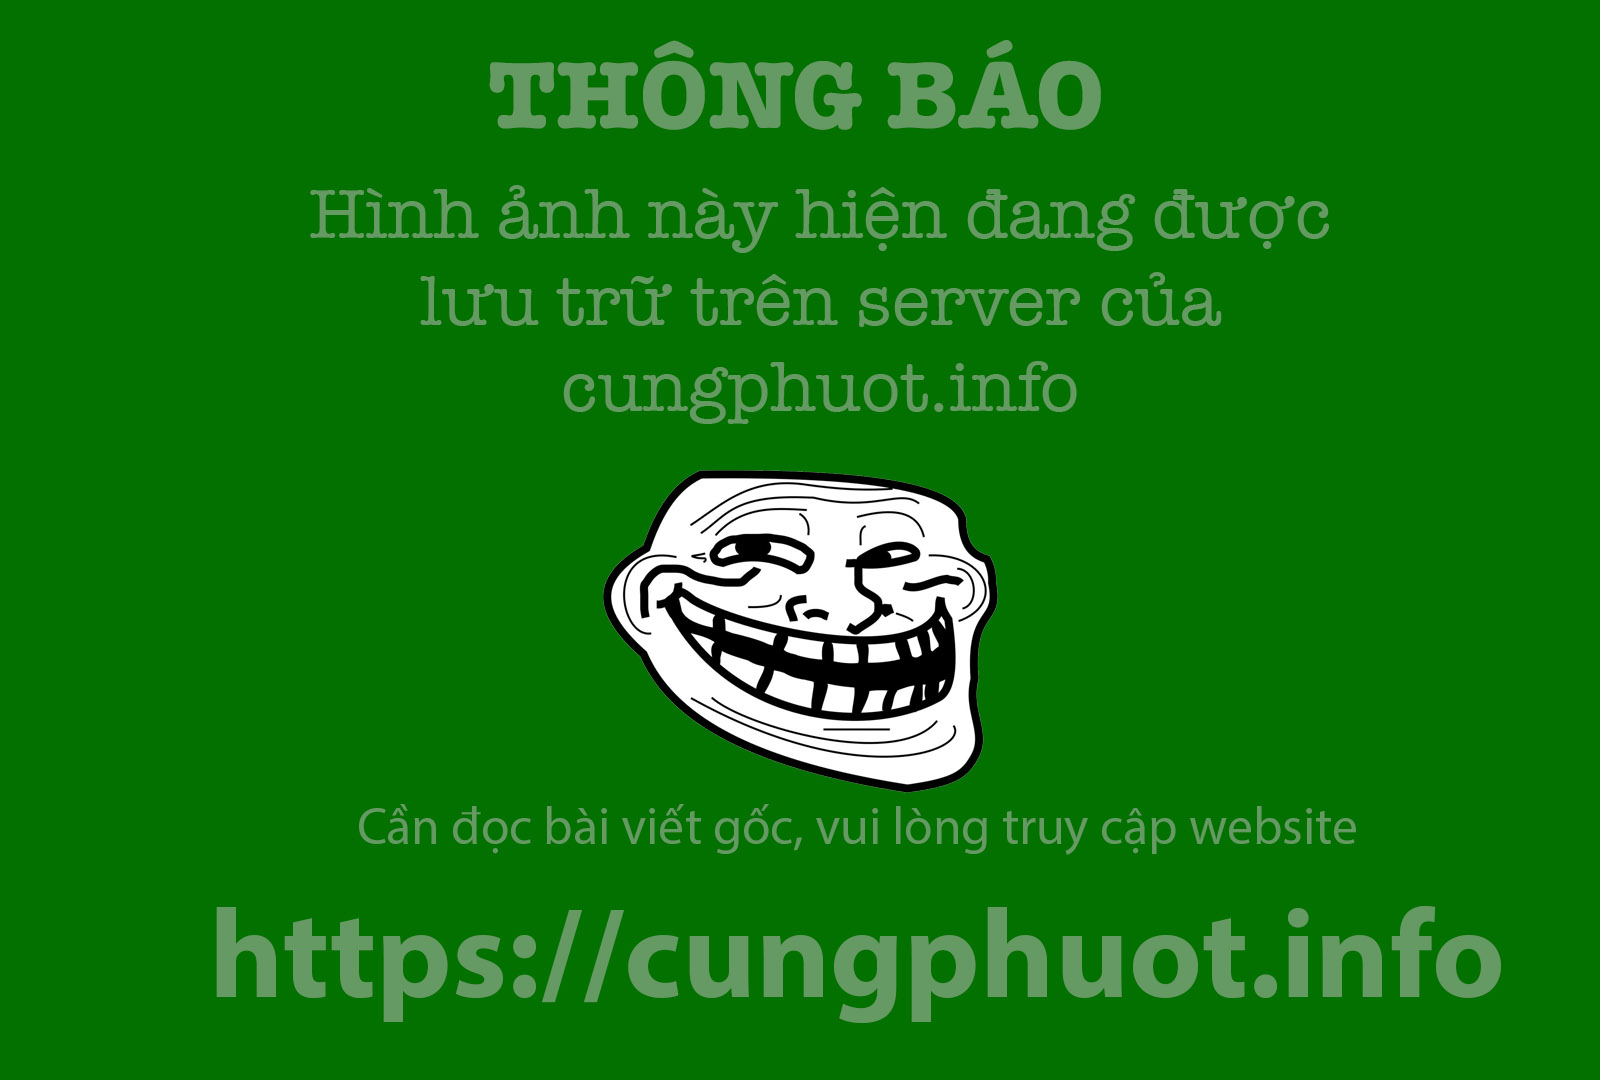 Hotels and Motels in Dong Hung, Thai Binh